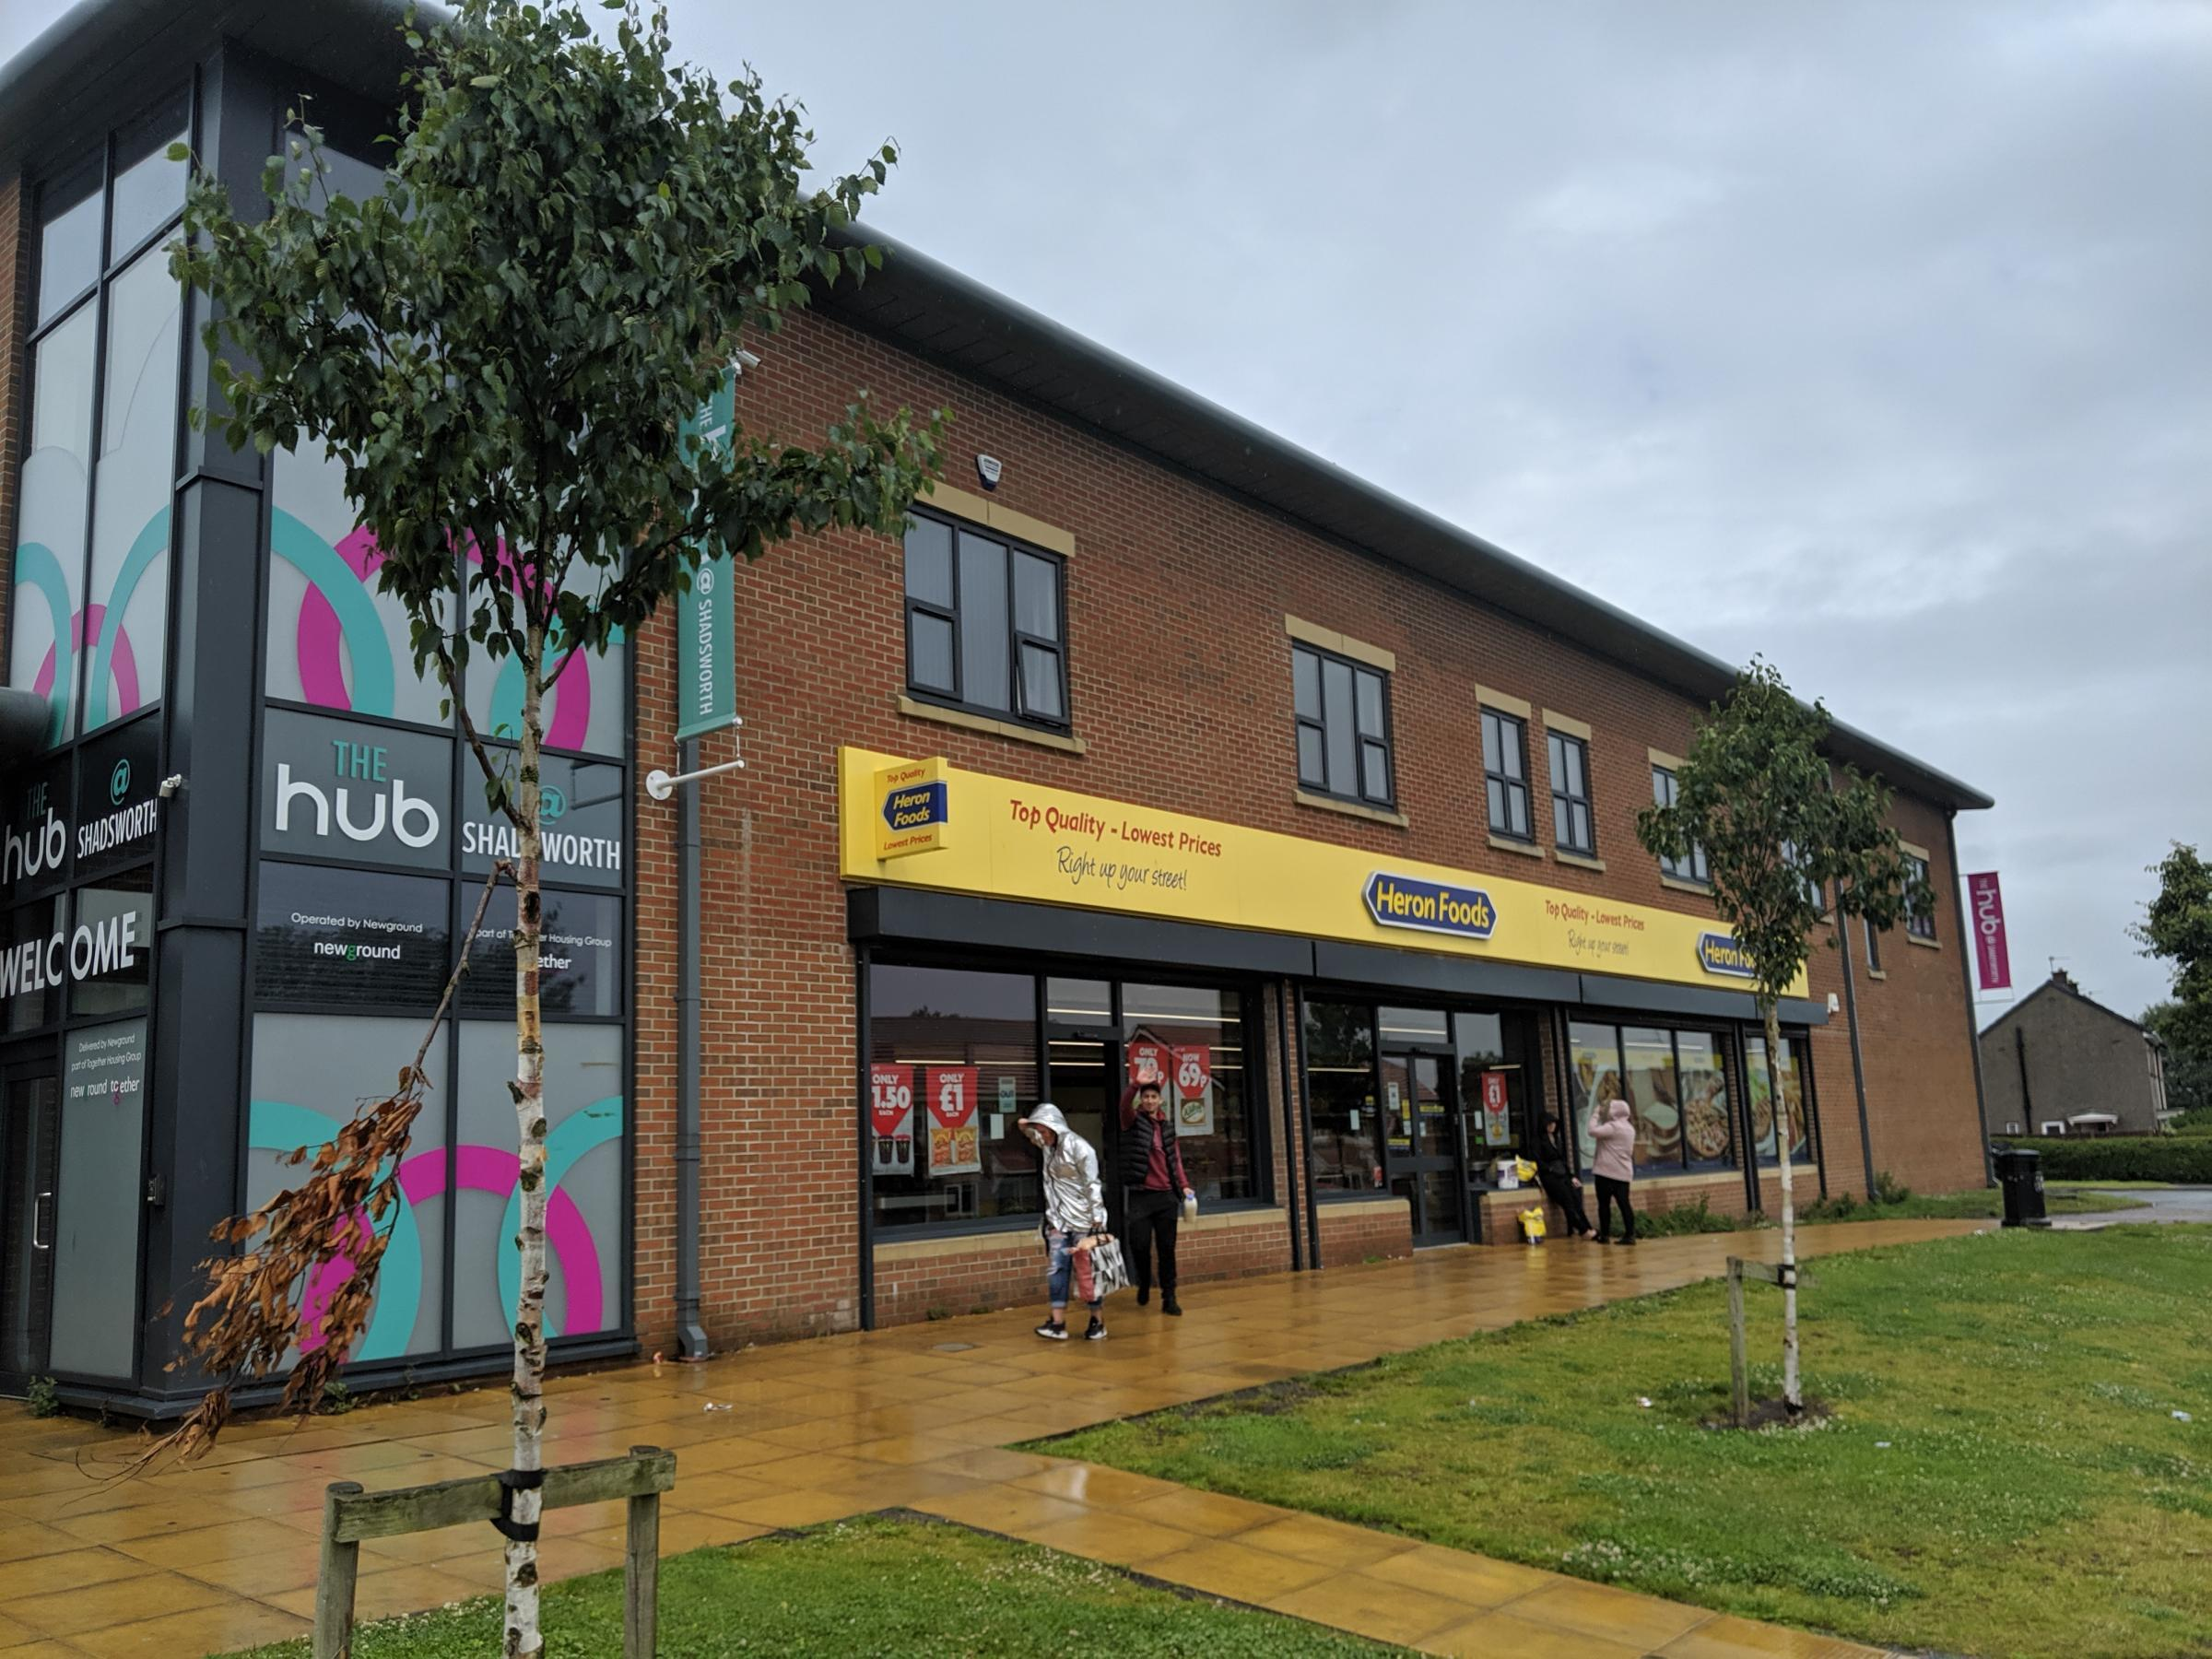 Warning after 'unacceptable' anti-social behaviour at shopping hub